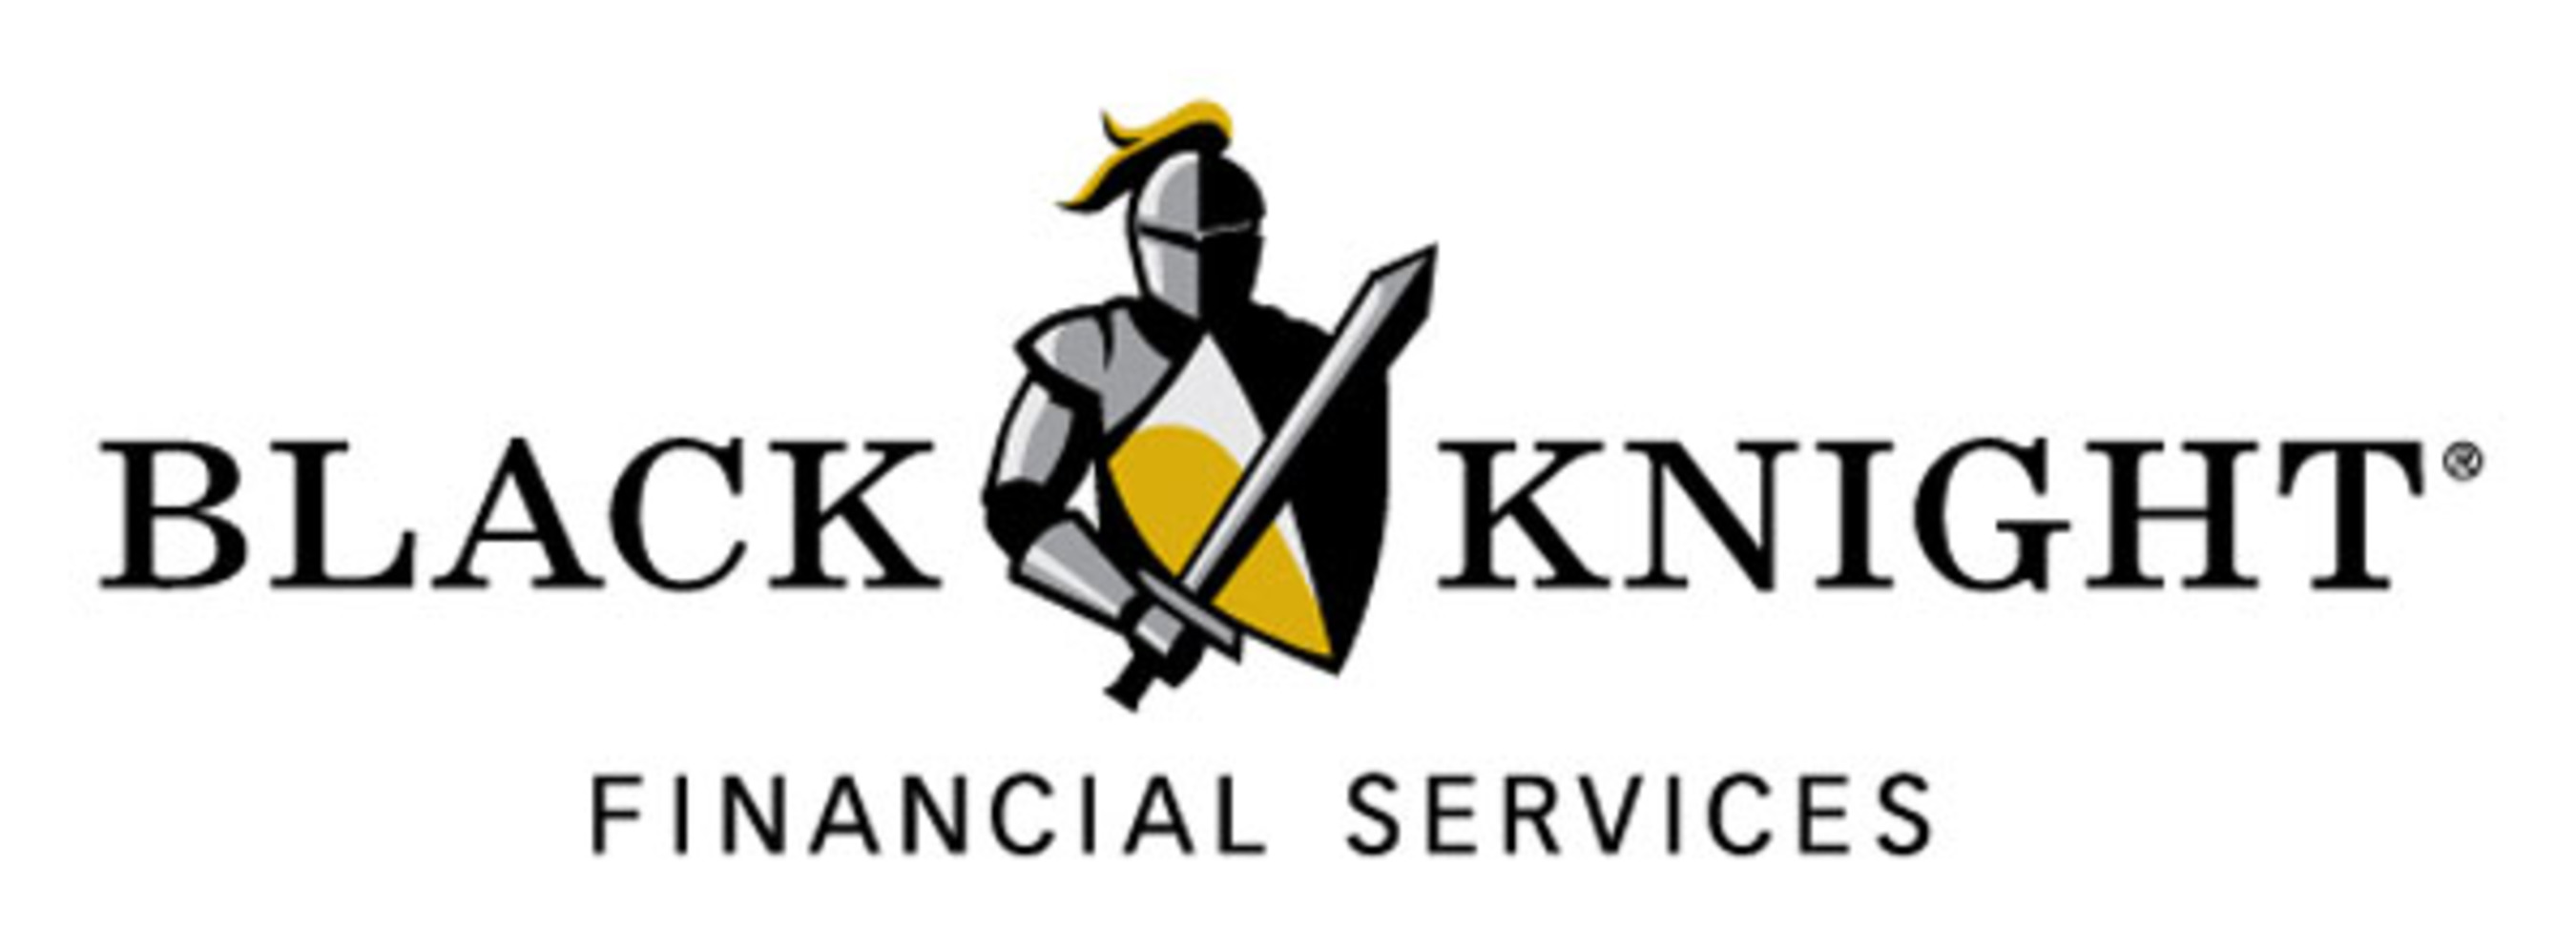 Black Knight Financial Services (NYSE: BKFS) logo